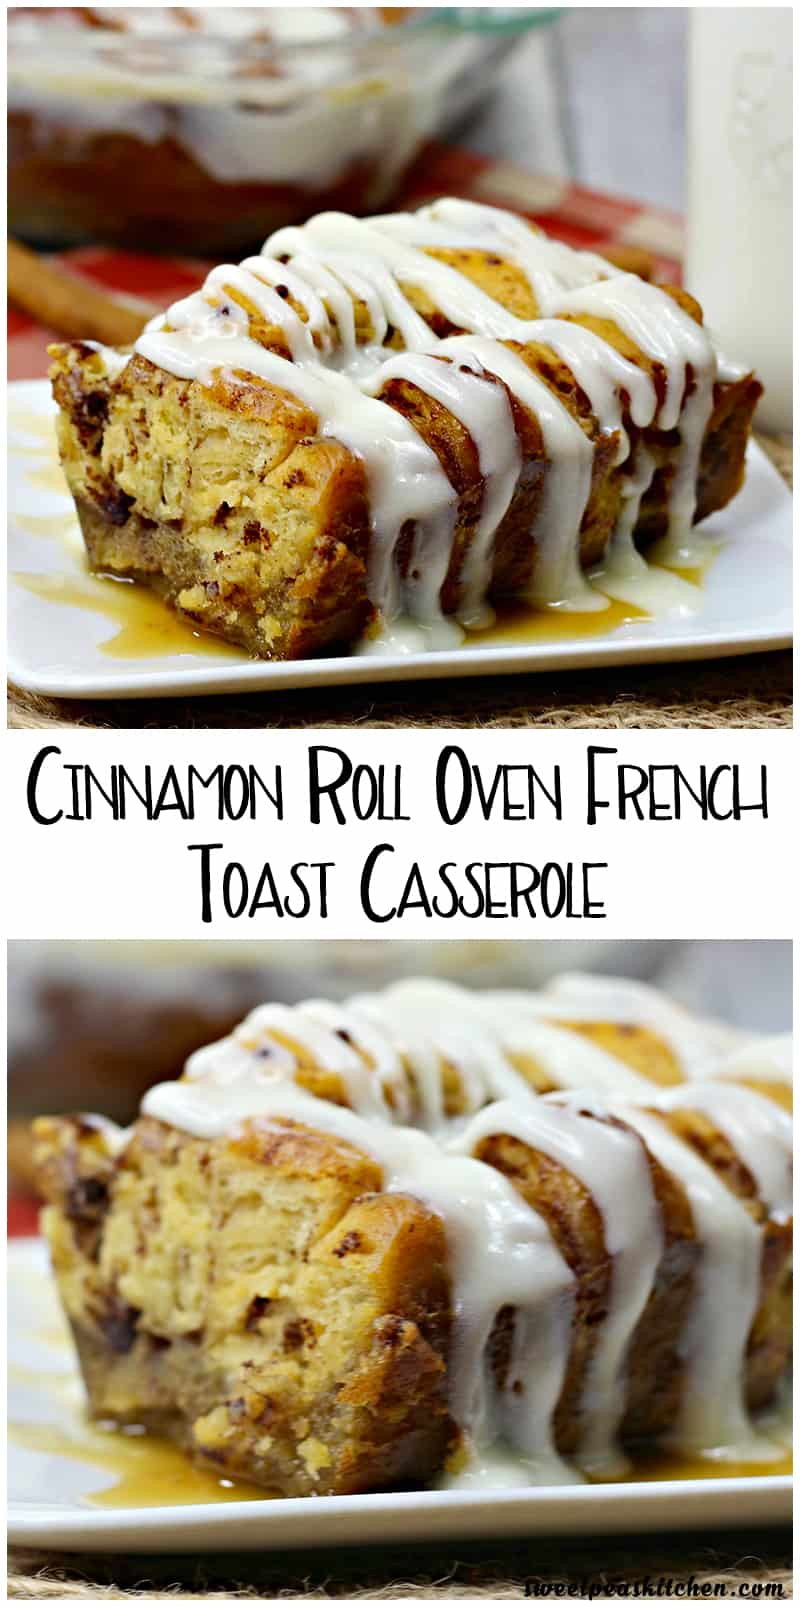 Cinnamon Roll Oven French Toast Casserole